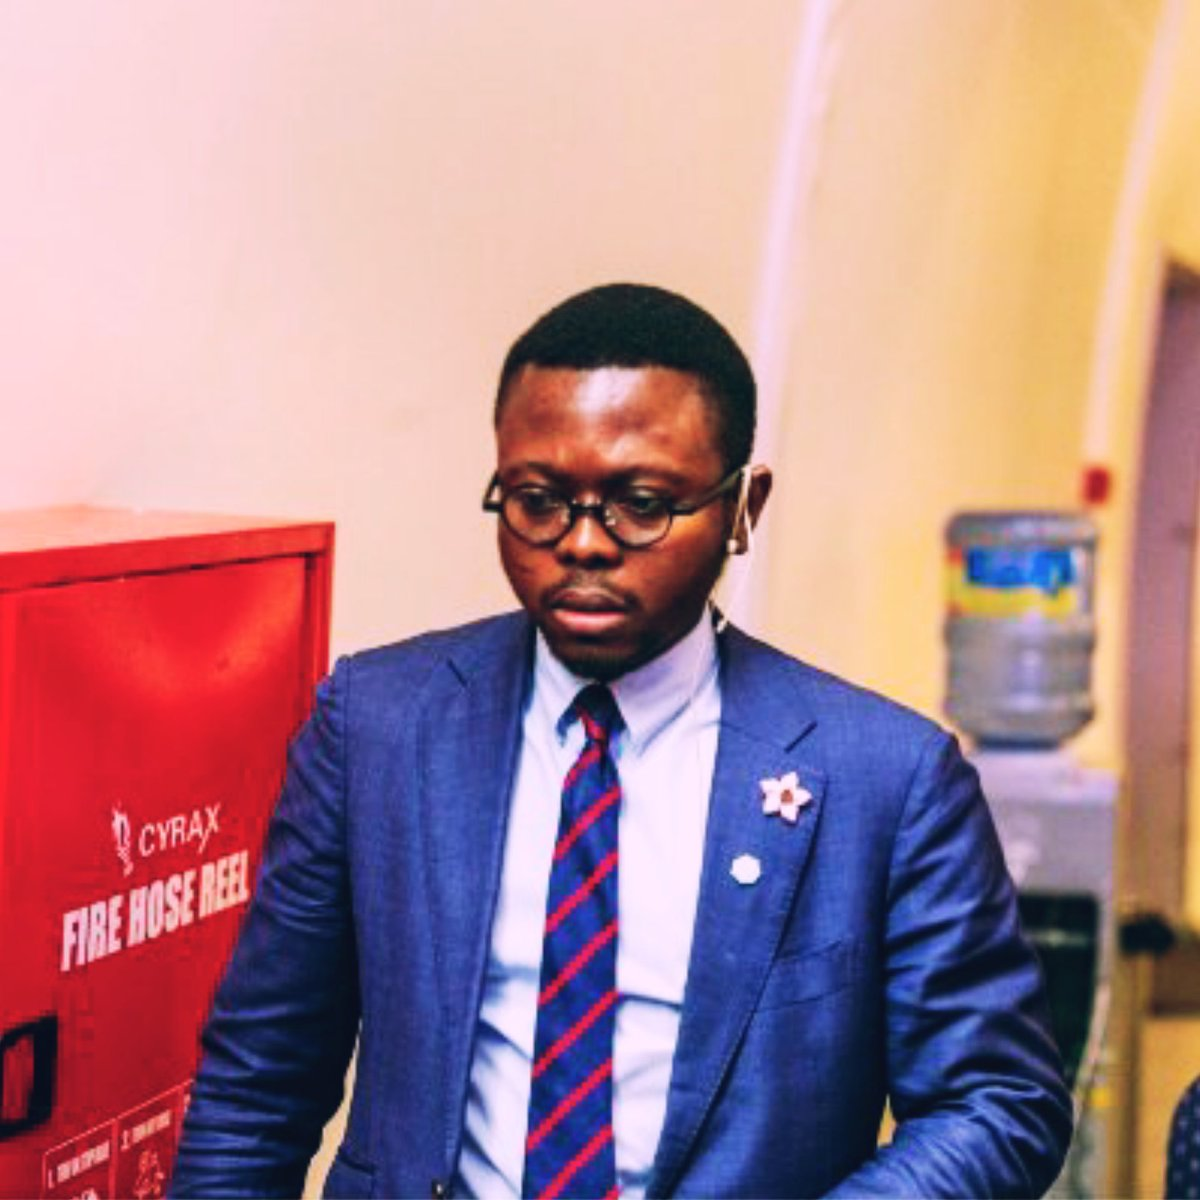 Meet ADEBAYO ALONGE  Nigerian Pharmacist, Adebayo Alonge has been commended by Canada's Prime Minister Justin Trudeau for co-developing an Artificial Intelligence that detects fake and spoilt drugs in 15 seconds for pharmacies across Africa  Let's Celebrate him https://t.co/chMnZWiOO1